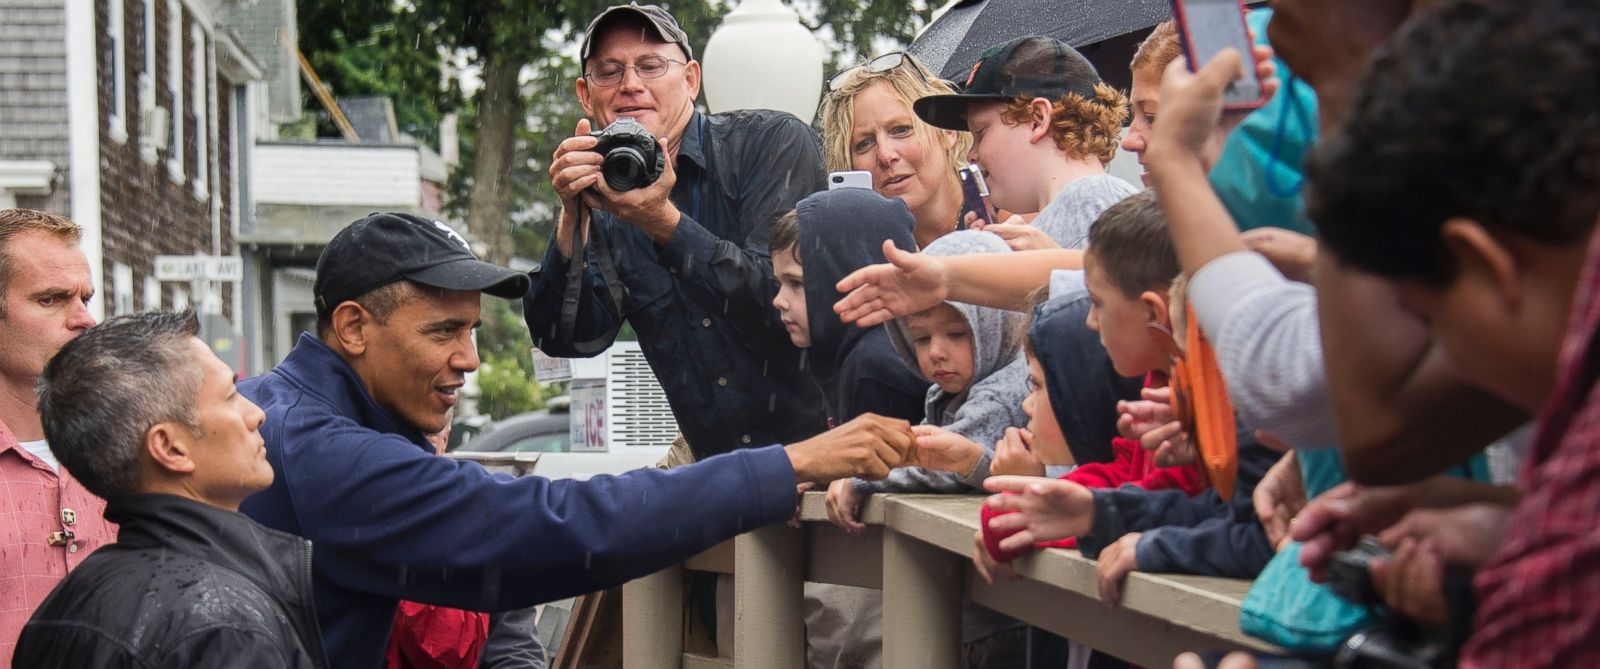 PHOTO: President Barack Obama shakes hands with people as he arrives at Nancys restaurant in Oak Bluffs, Mass. on August 13, 2013.